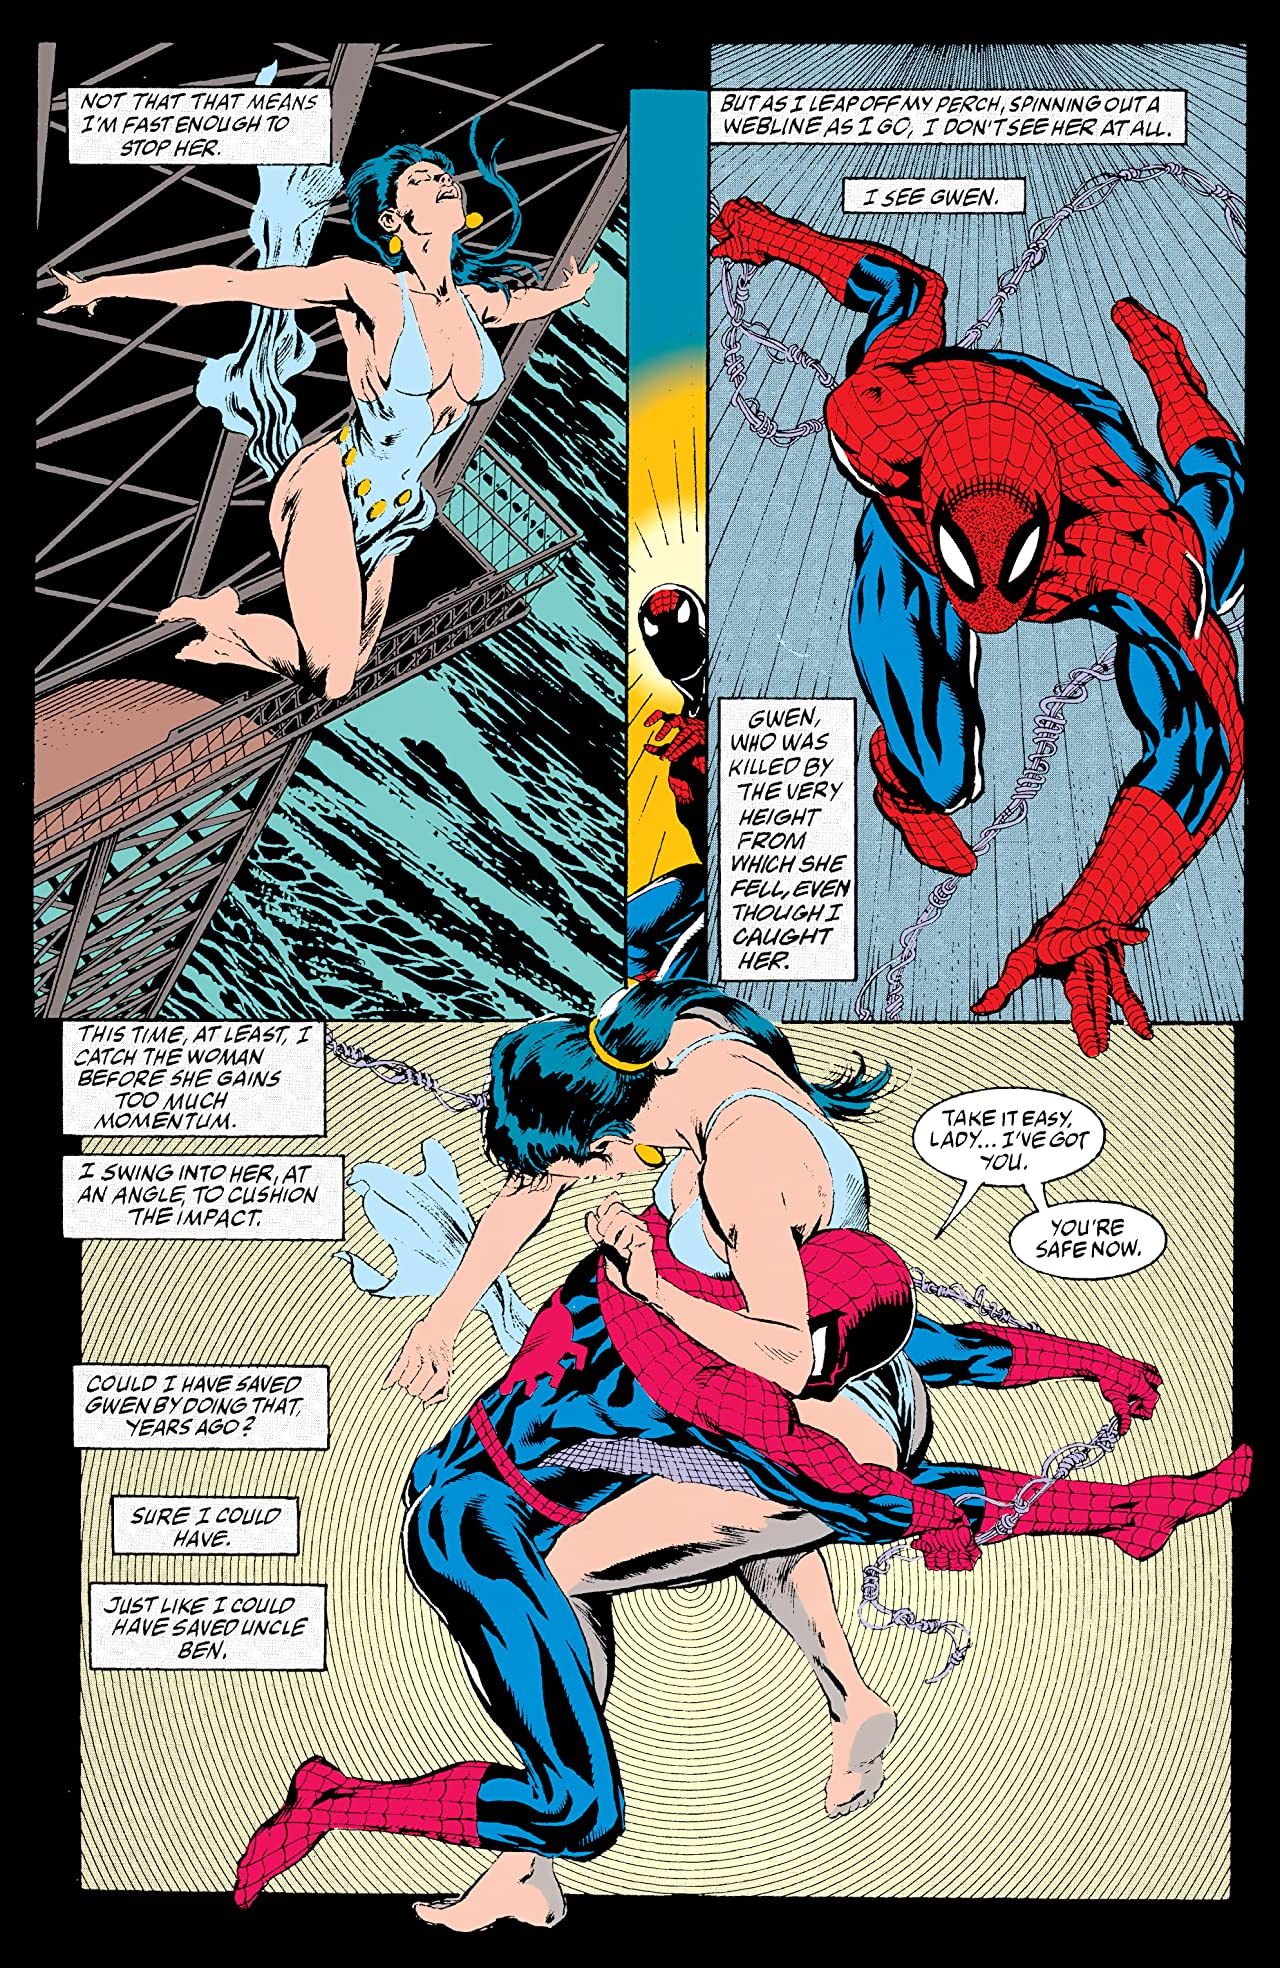 Spider-Man/Doctor Strange: The Way To Dusty Death (1992) #1